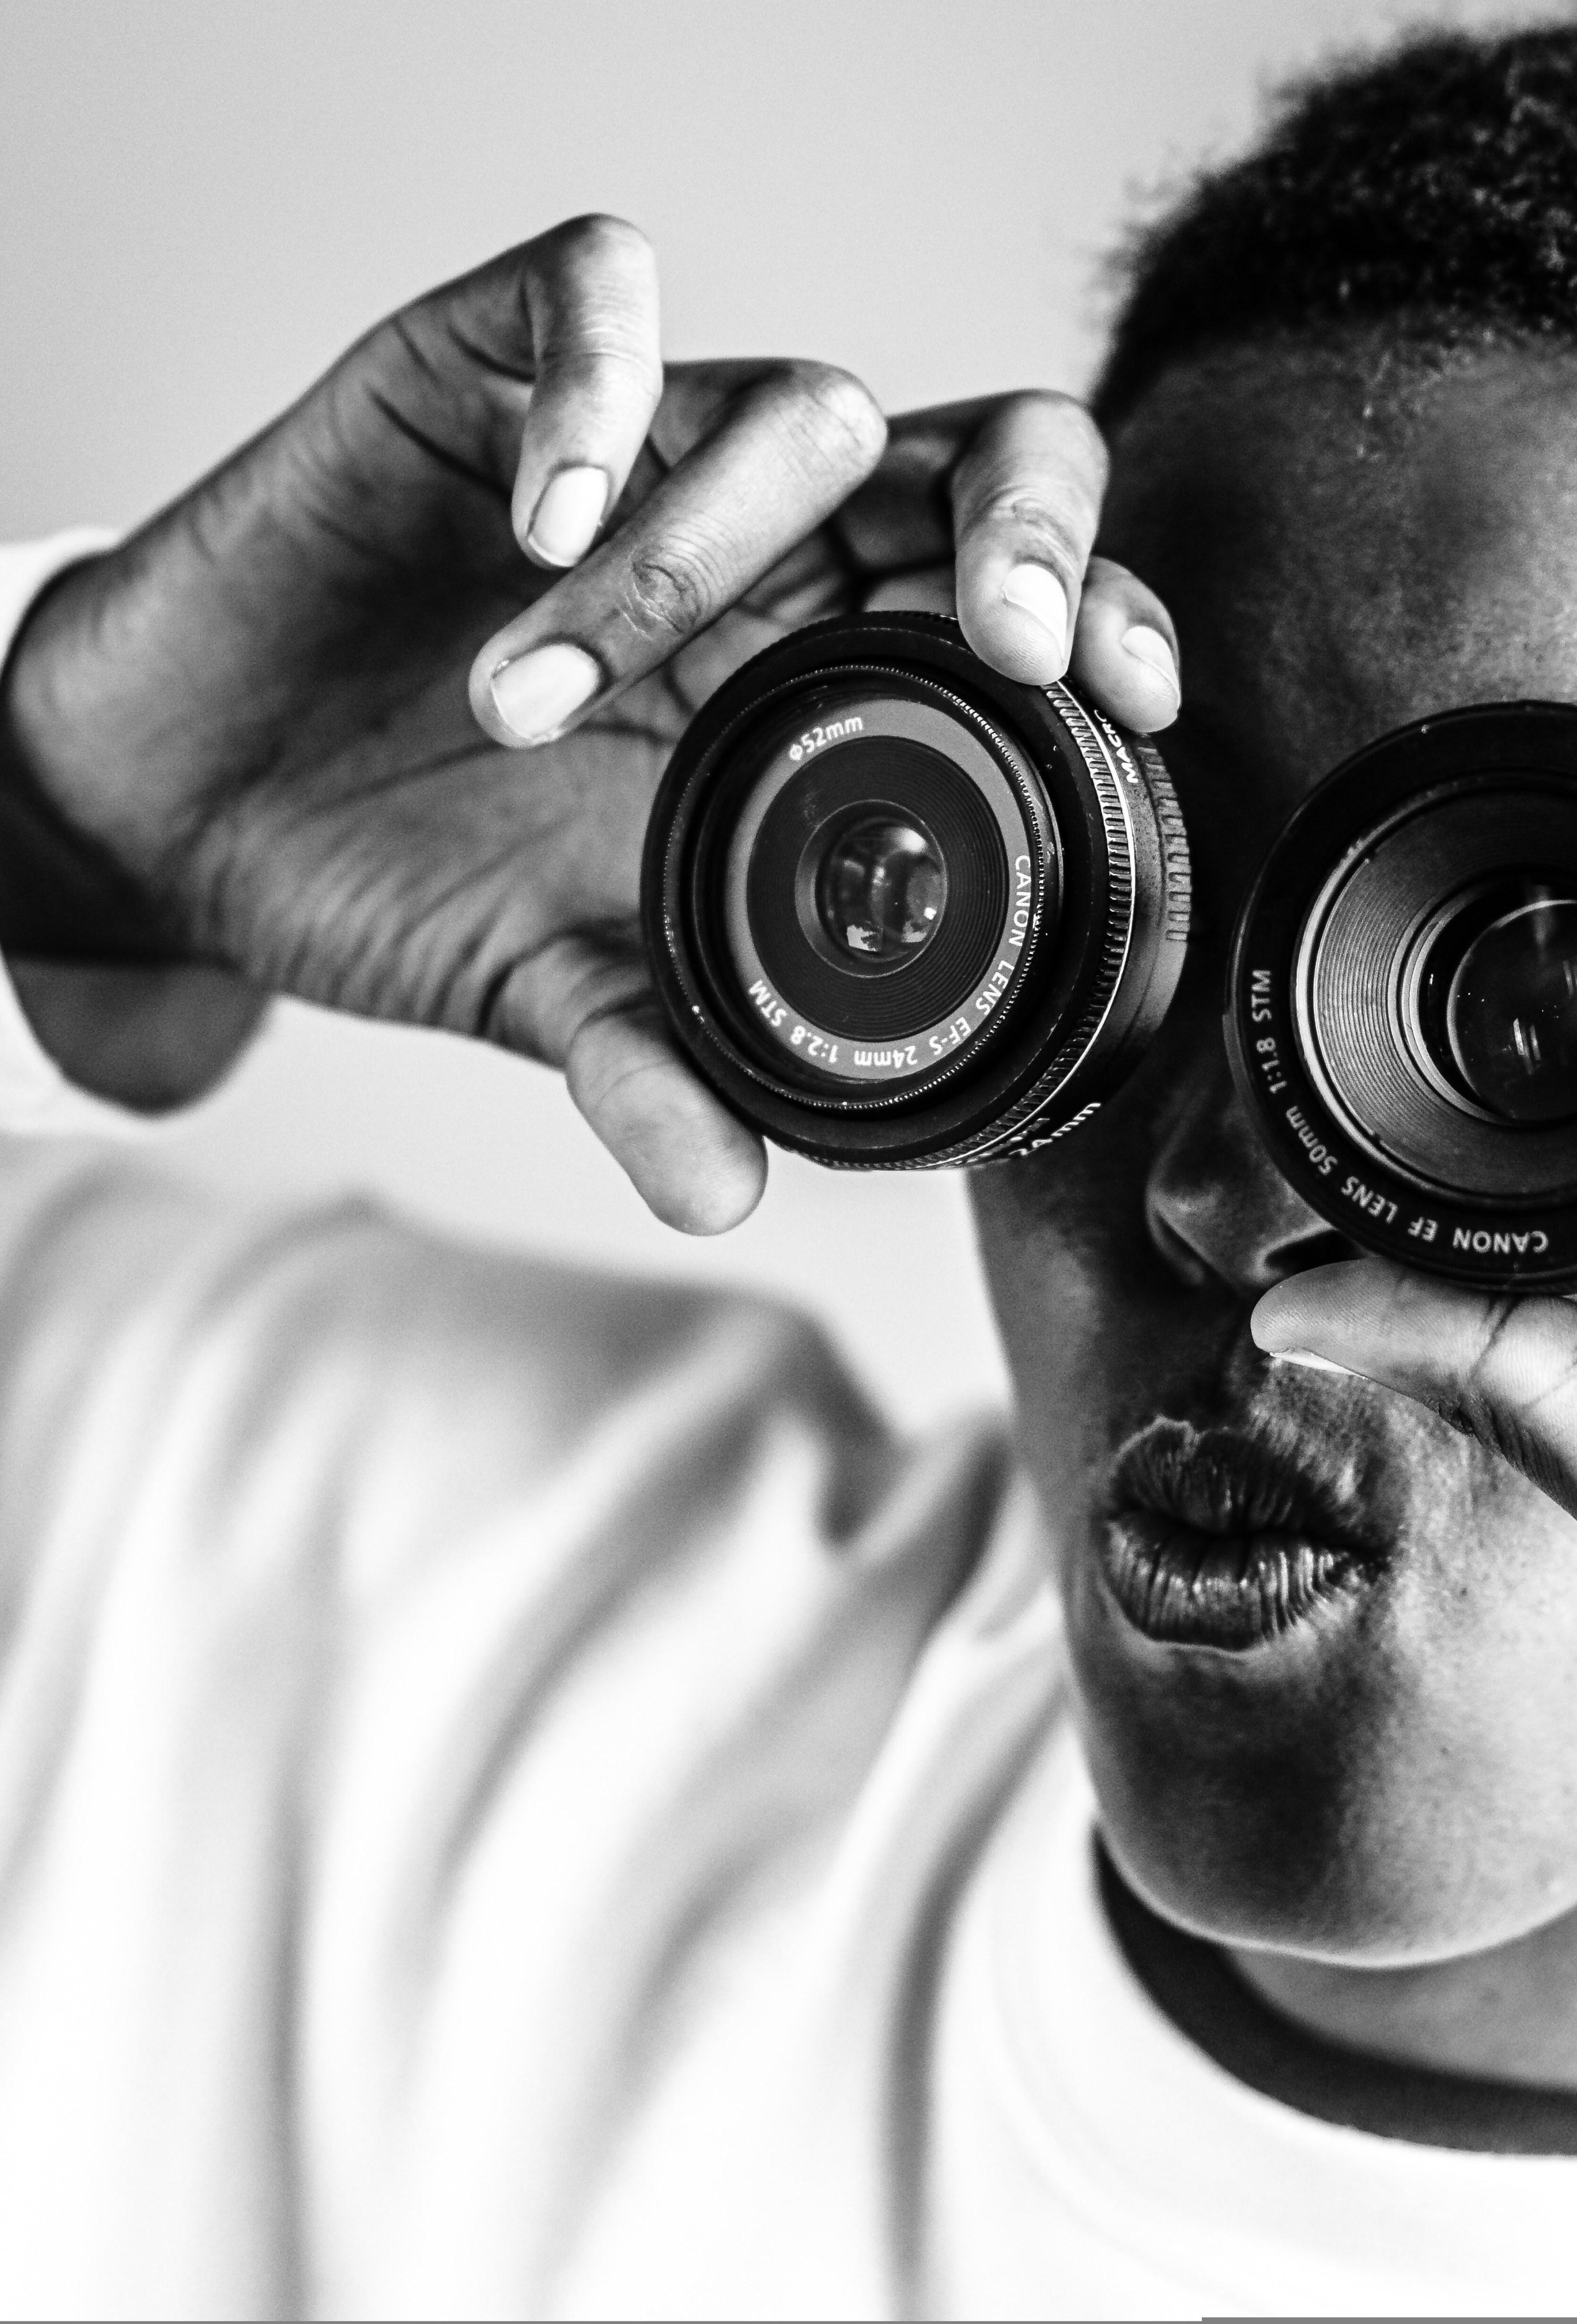 A man, depicted in black and white, is holding two camera lenses to both of his eyes